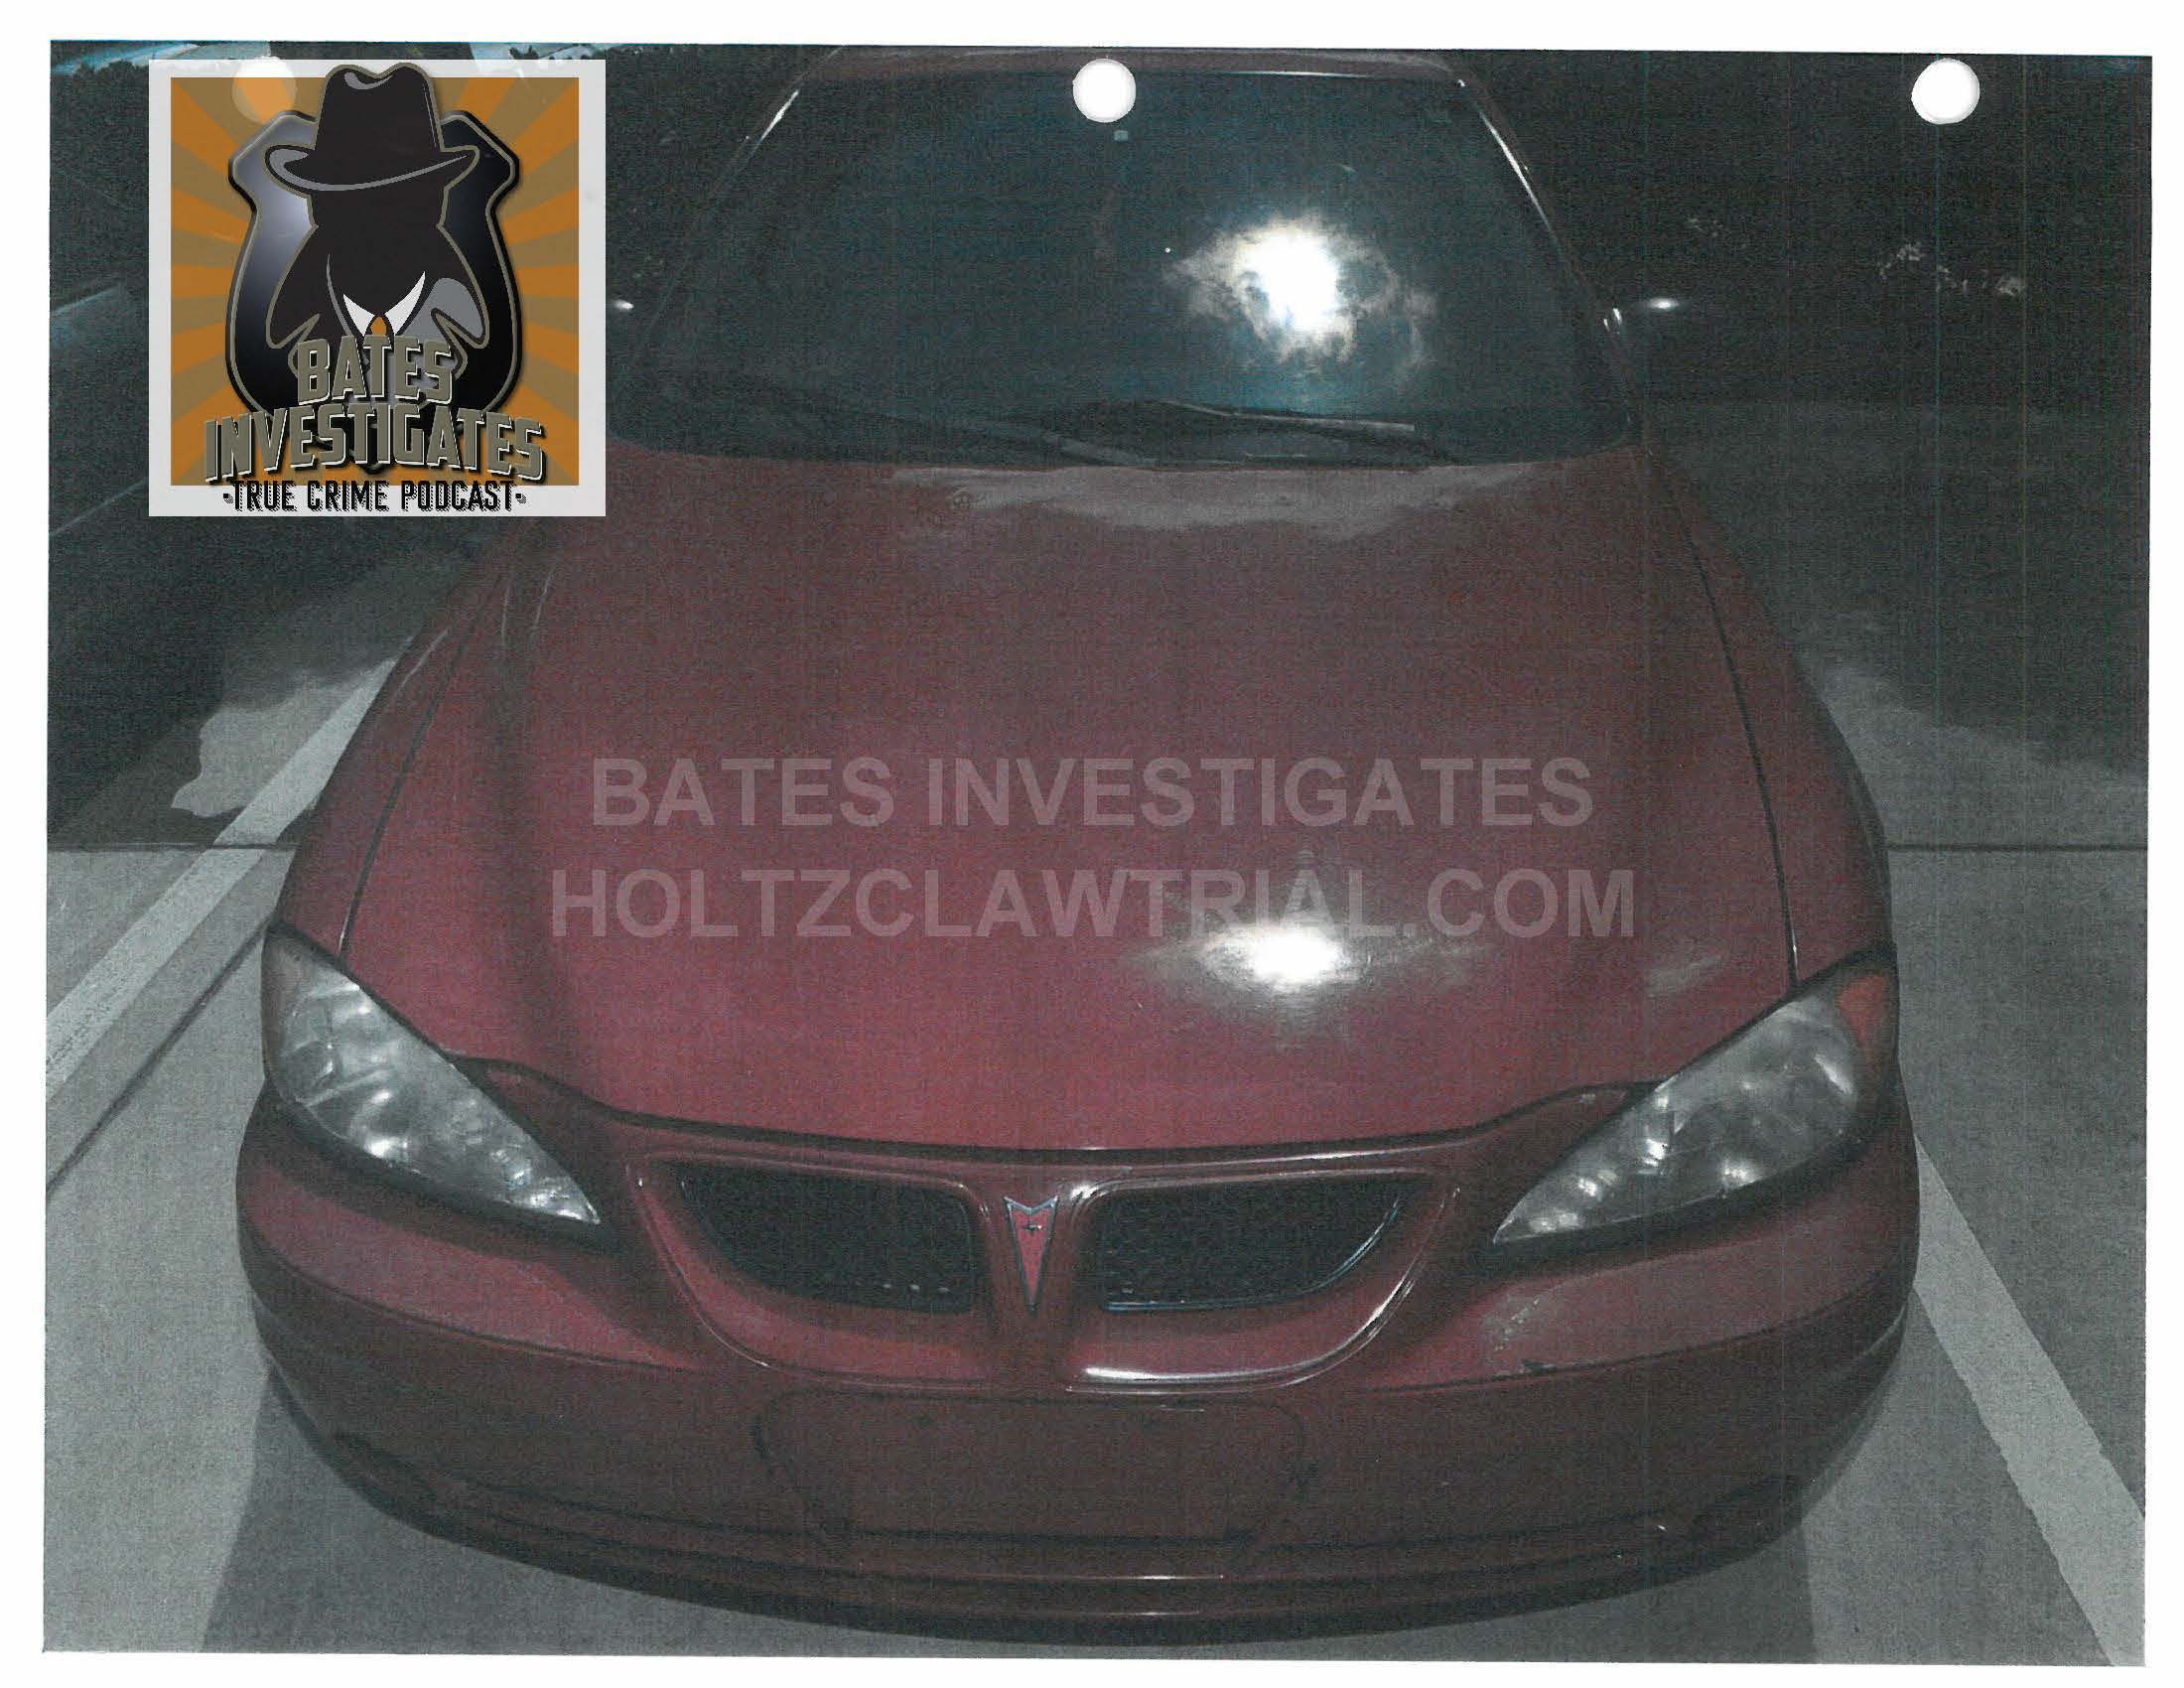 Holtzclaw Podcast Ep02 - Ligons Car - Watermarked_Page_12.jpg